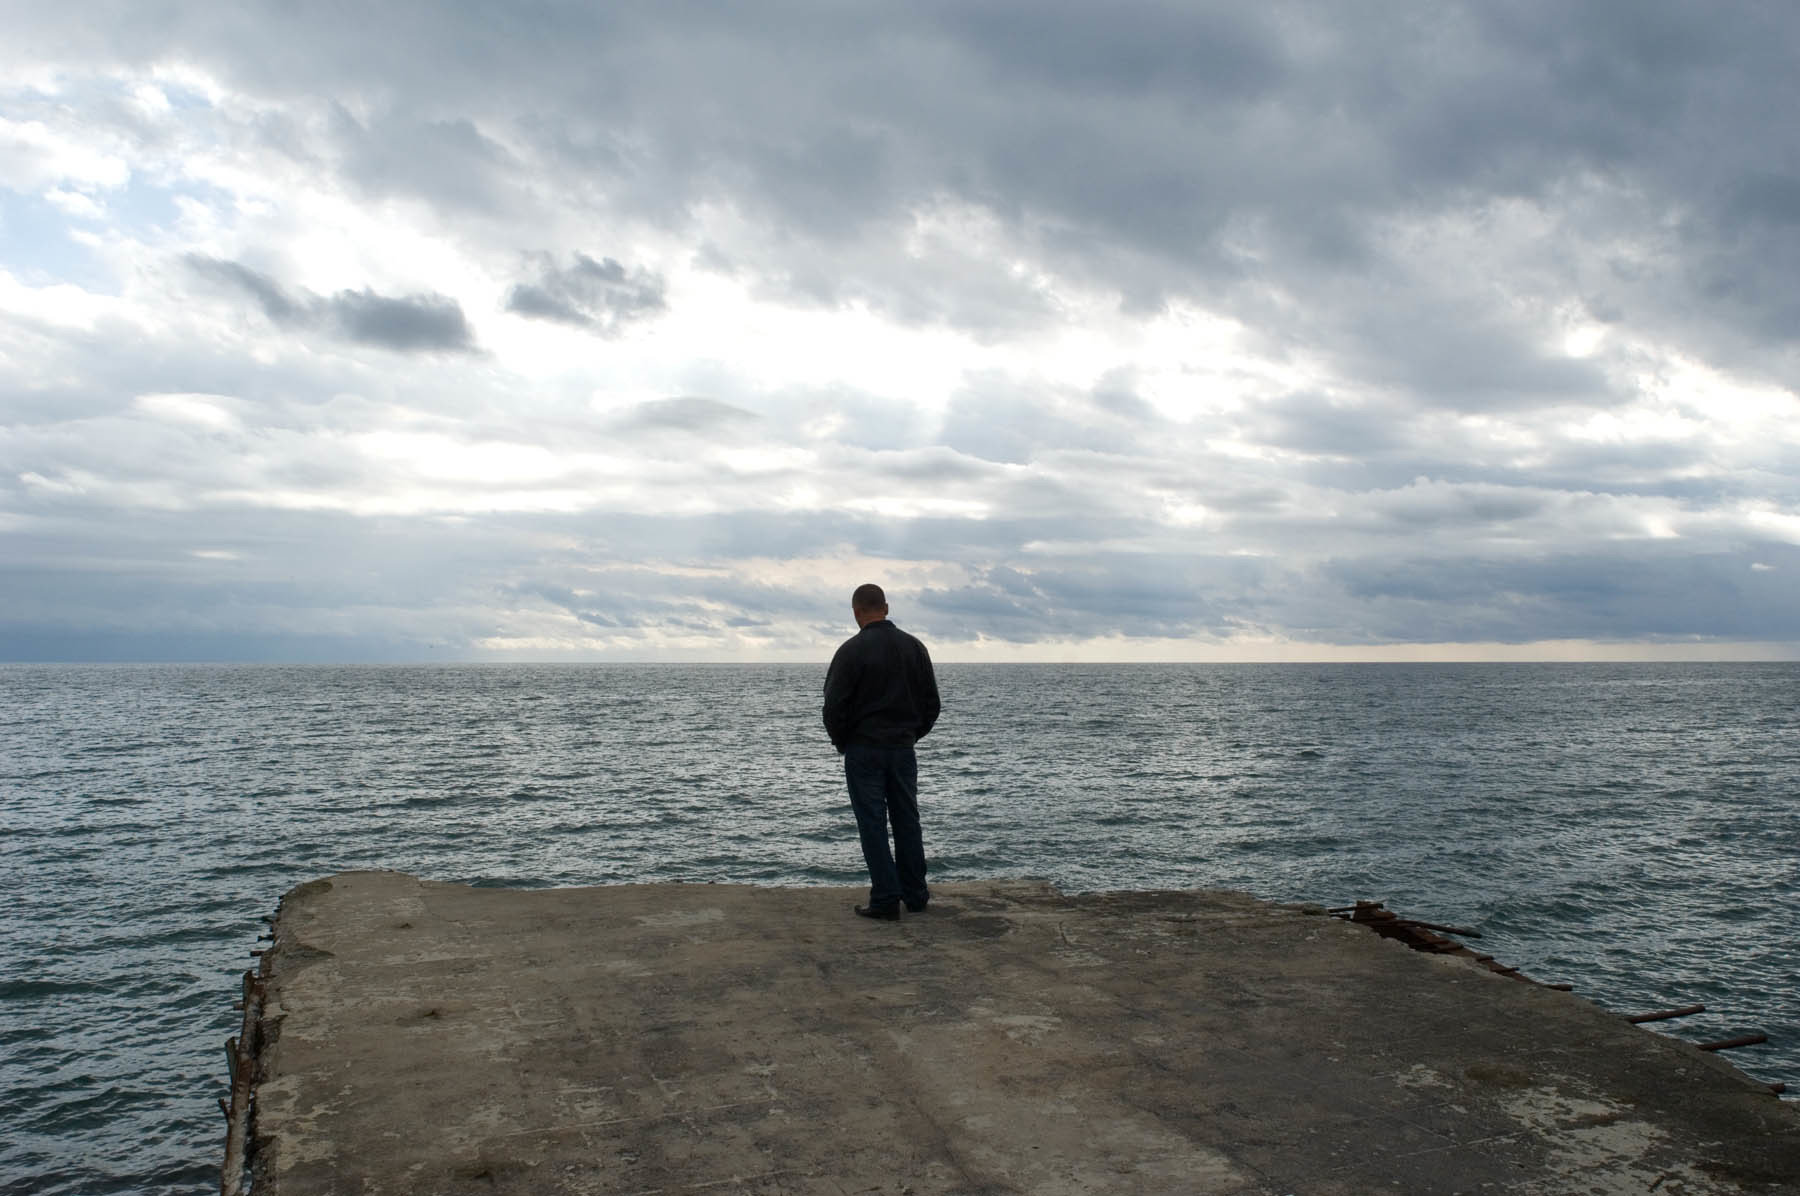 A lone man looks outward over the Black Sea on a broken pier.